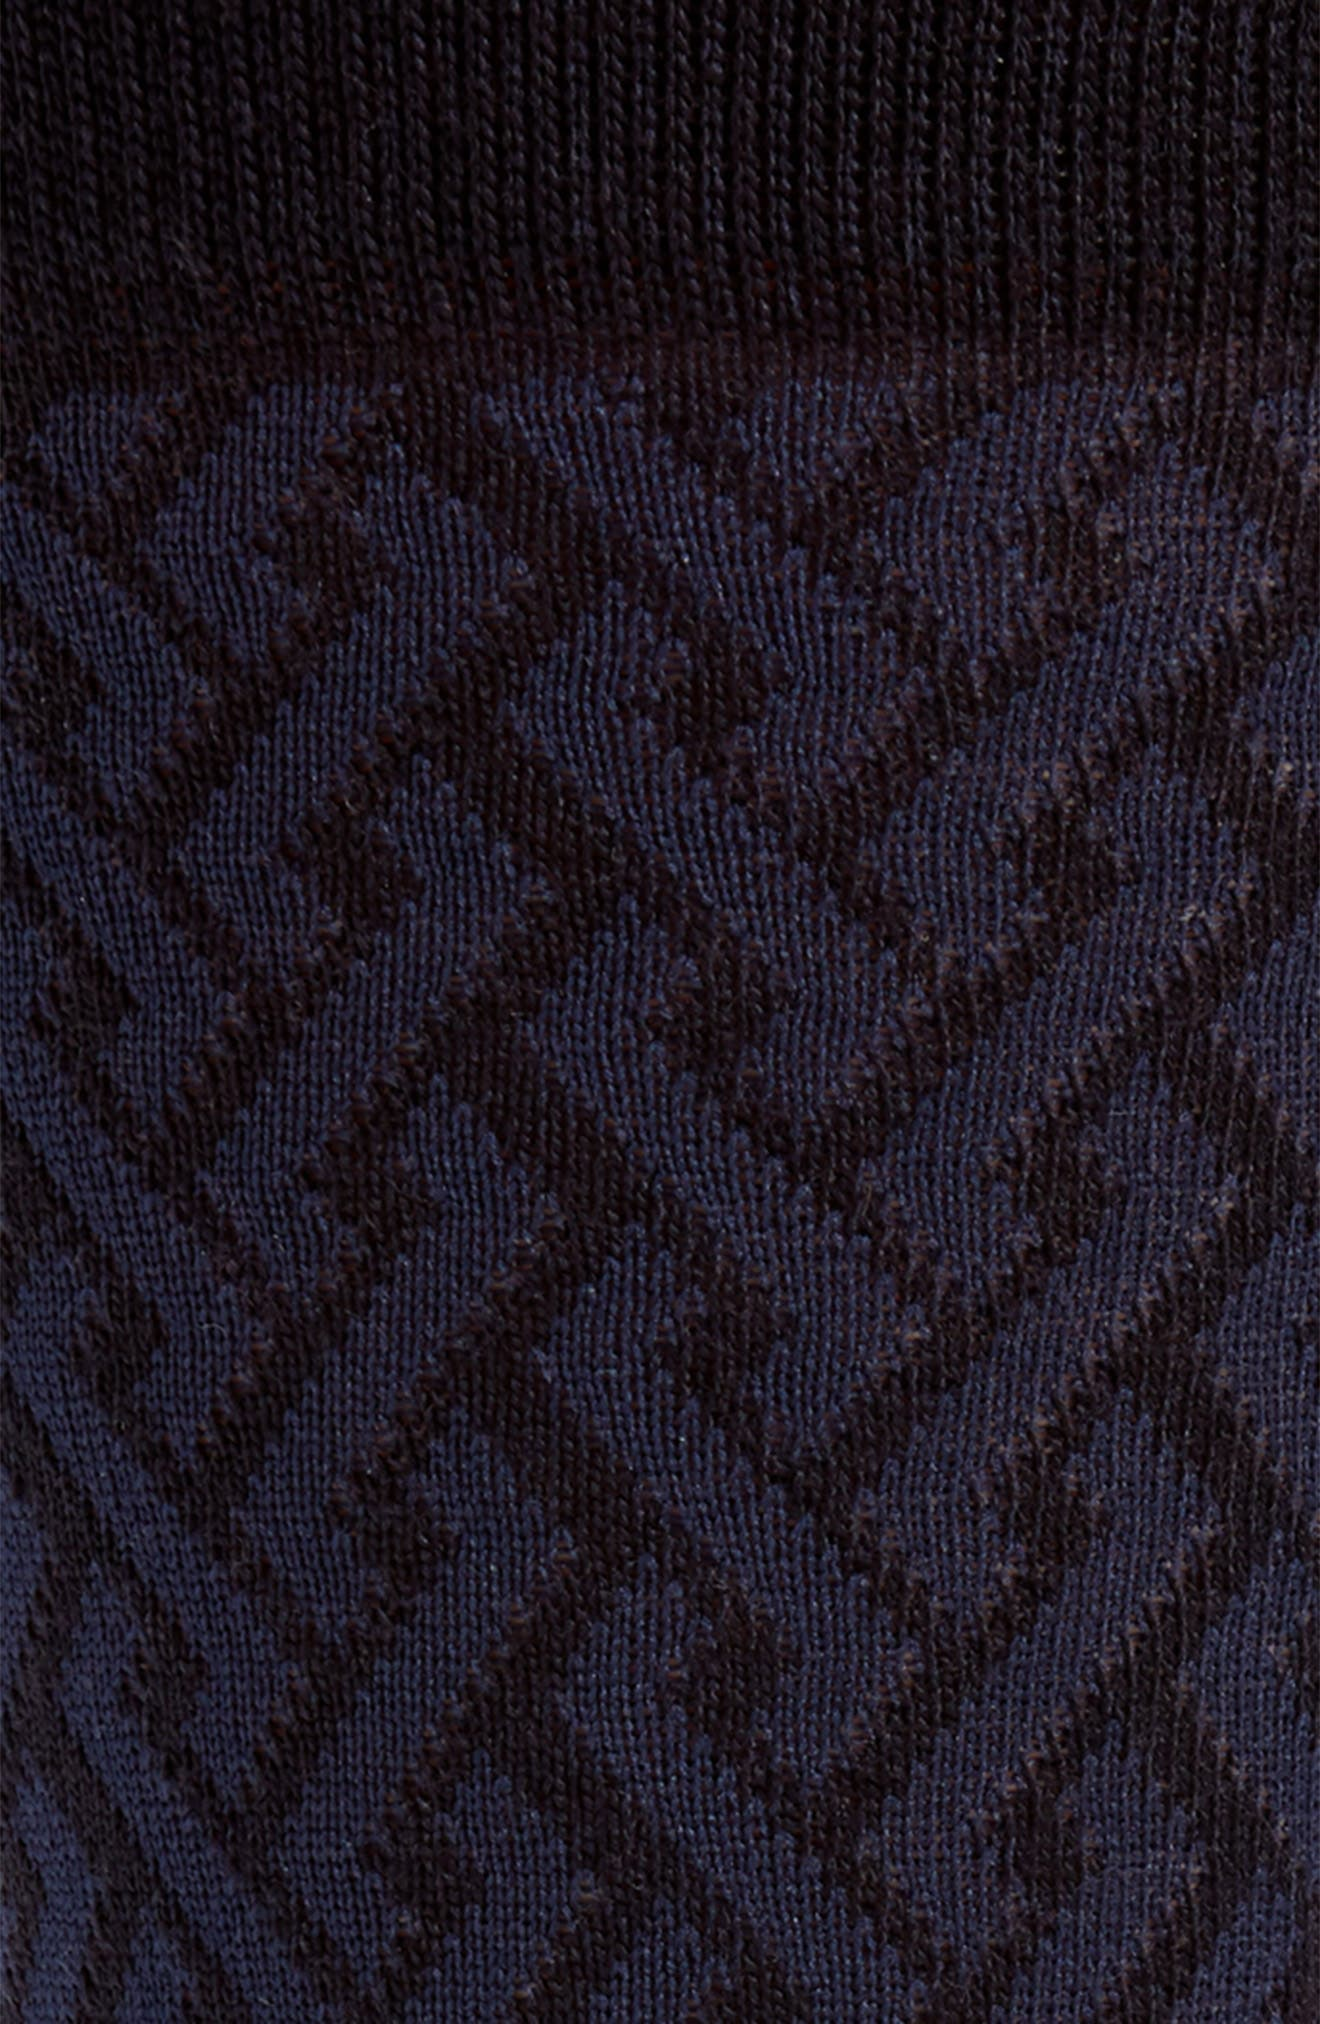 Intertwined Lines Socks,                             Alternate thumbnail 2, color,                             Navy